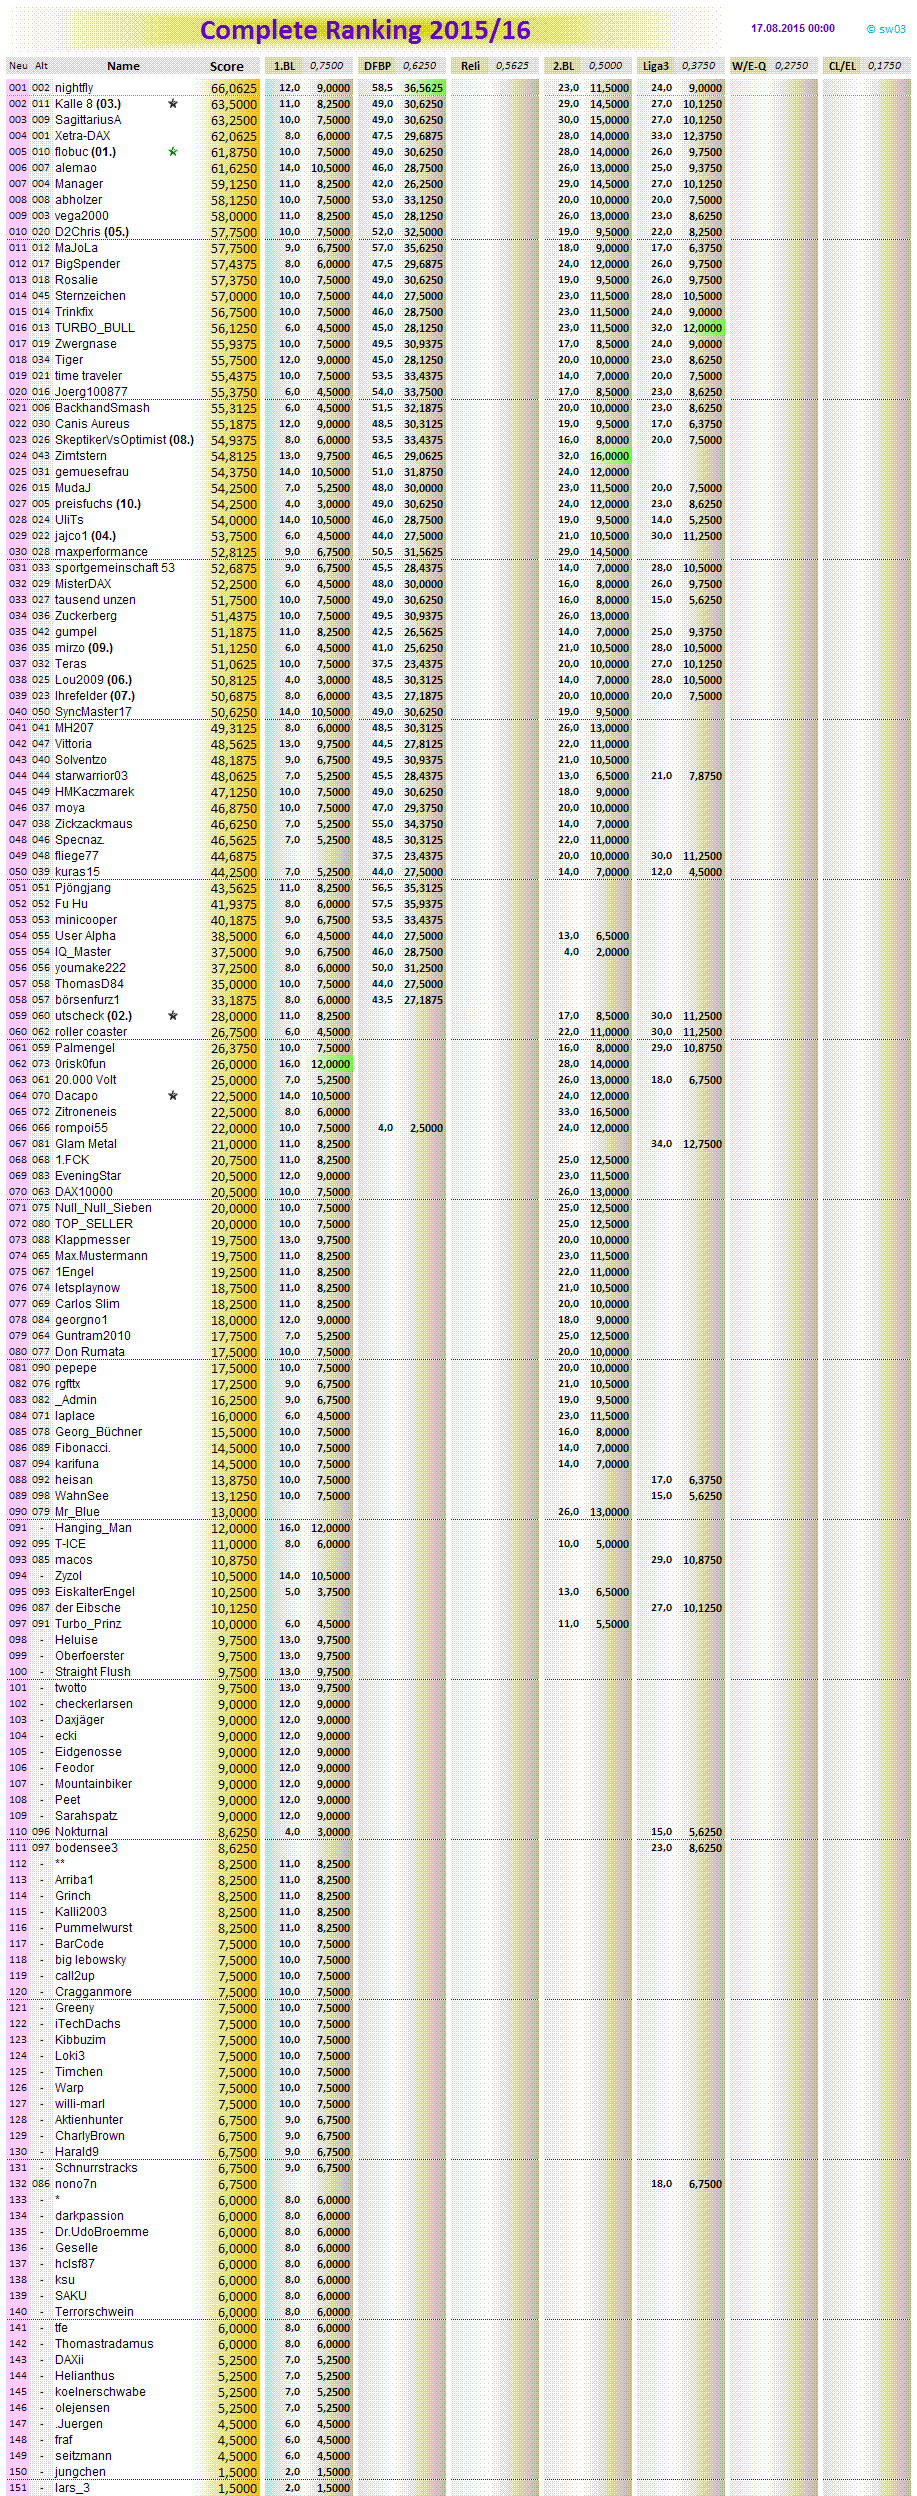 completeranking2015-16.png